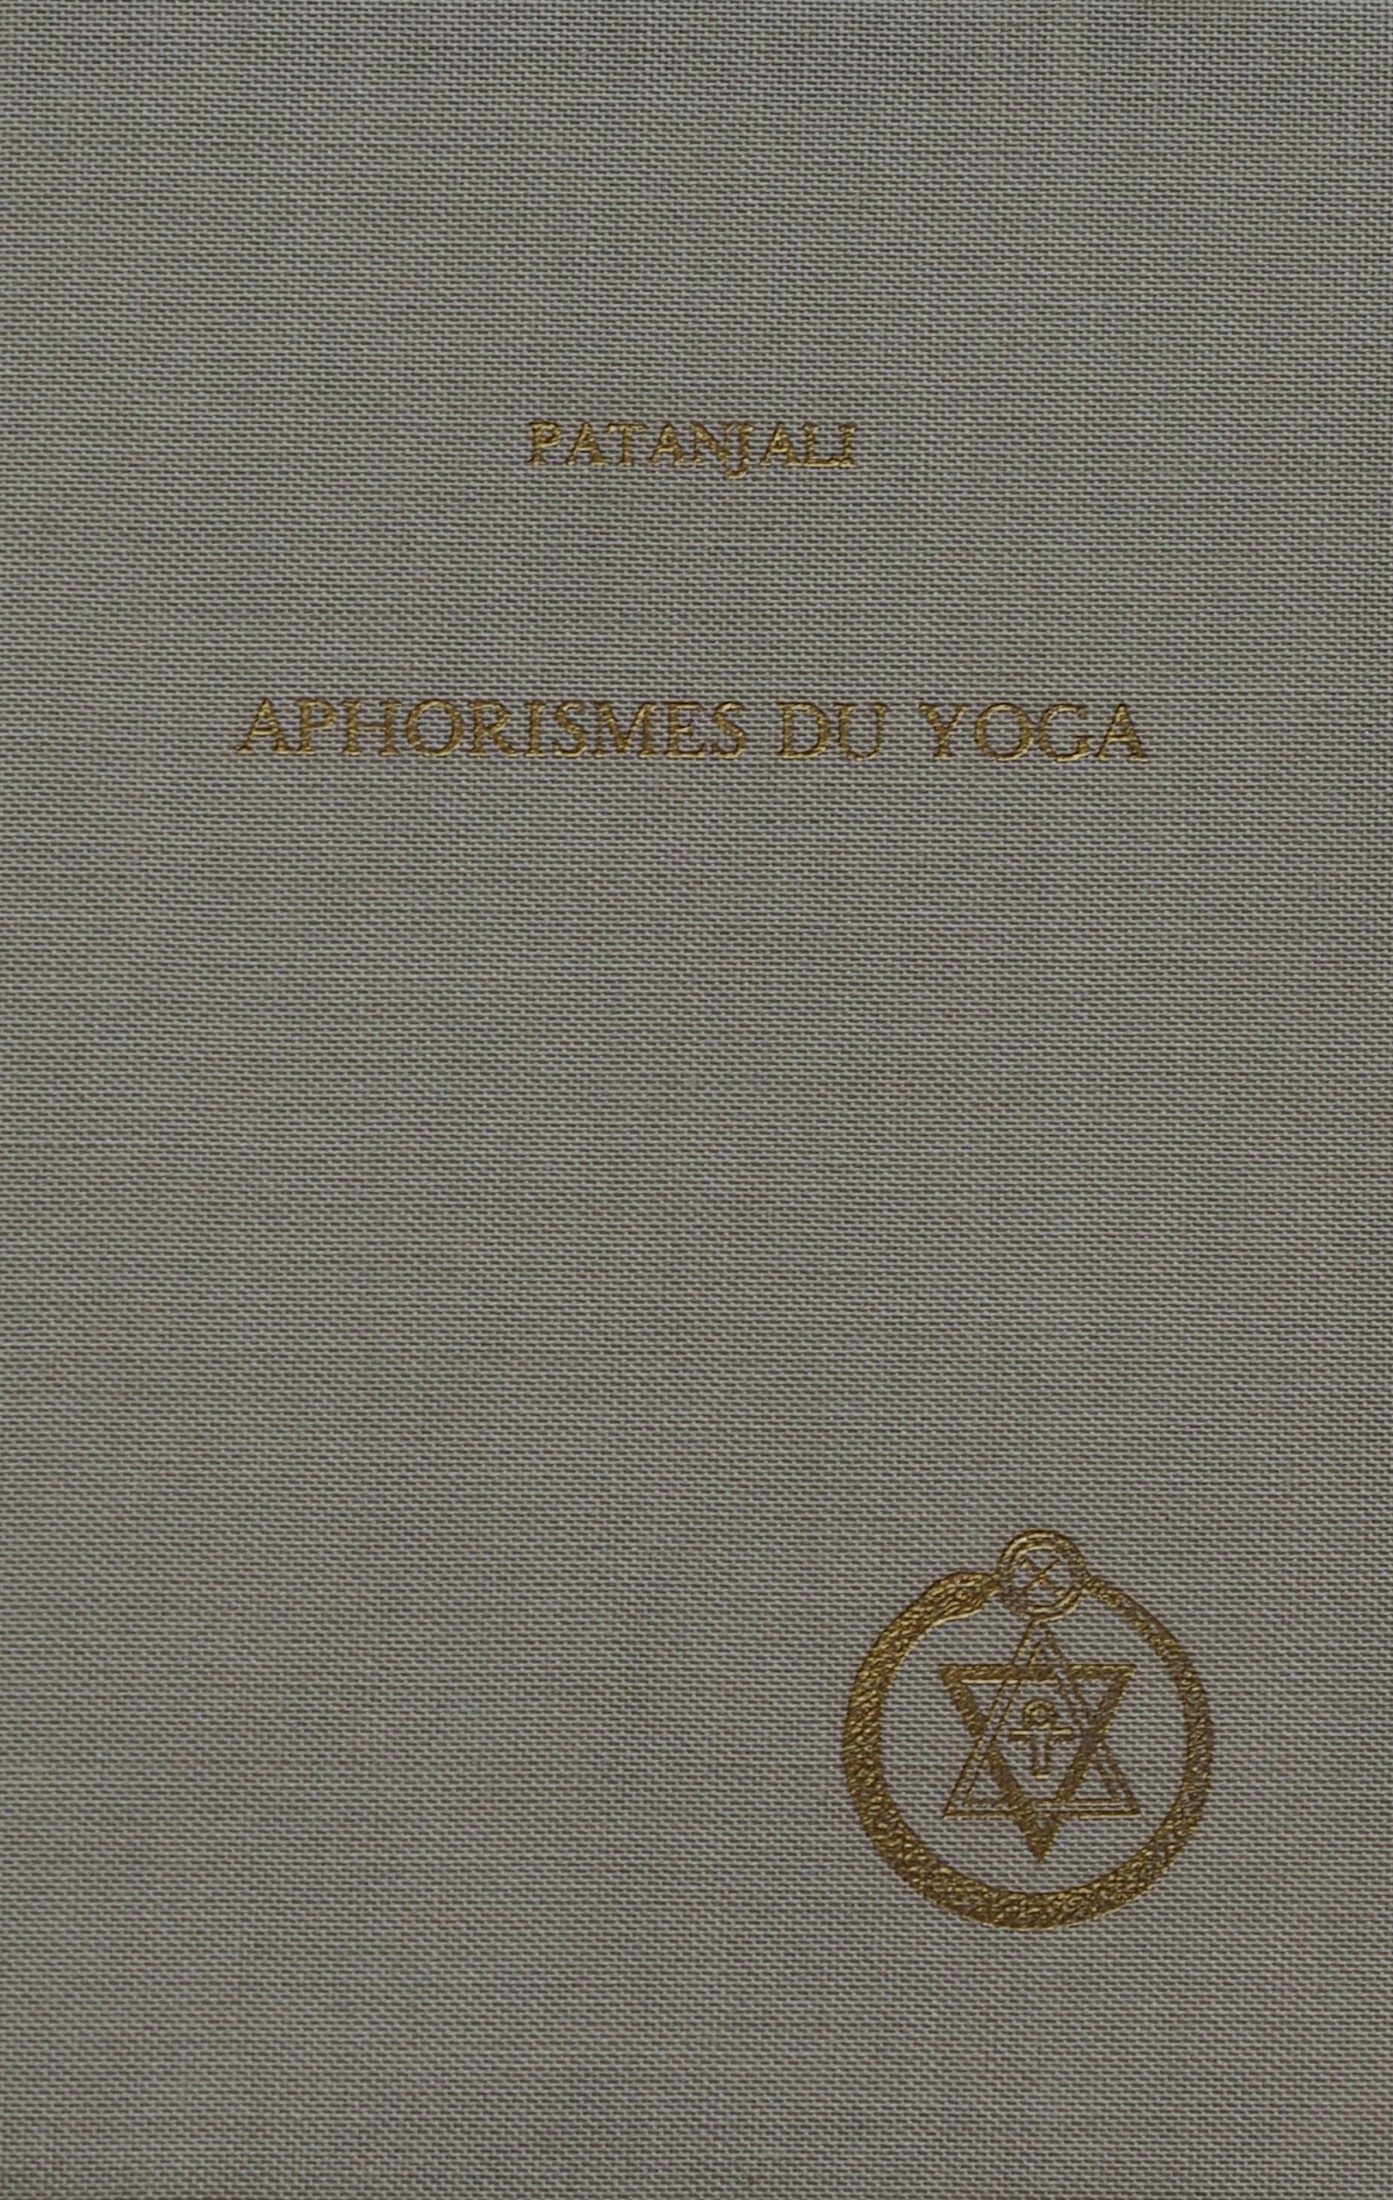 Photo des Aphorismes du Yoga de Patanjali